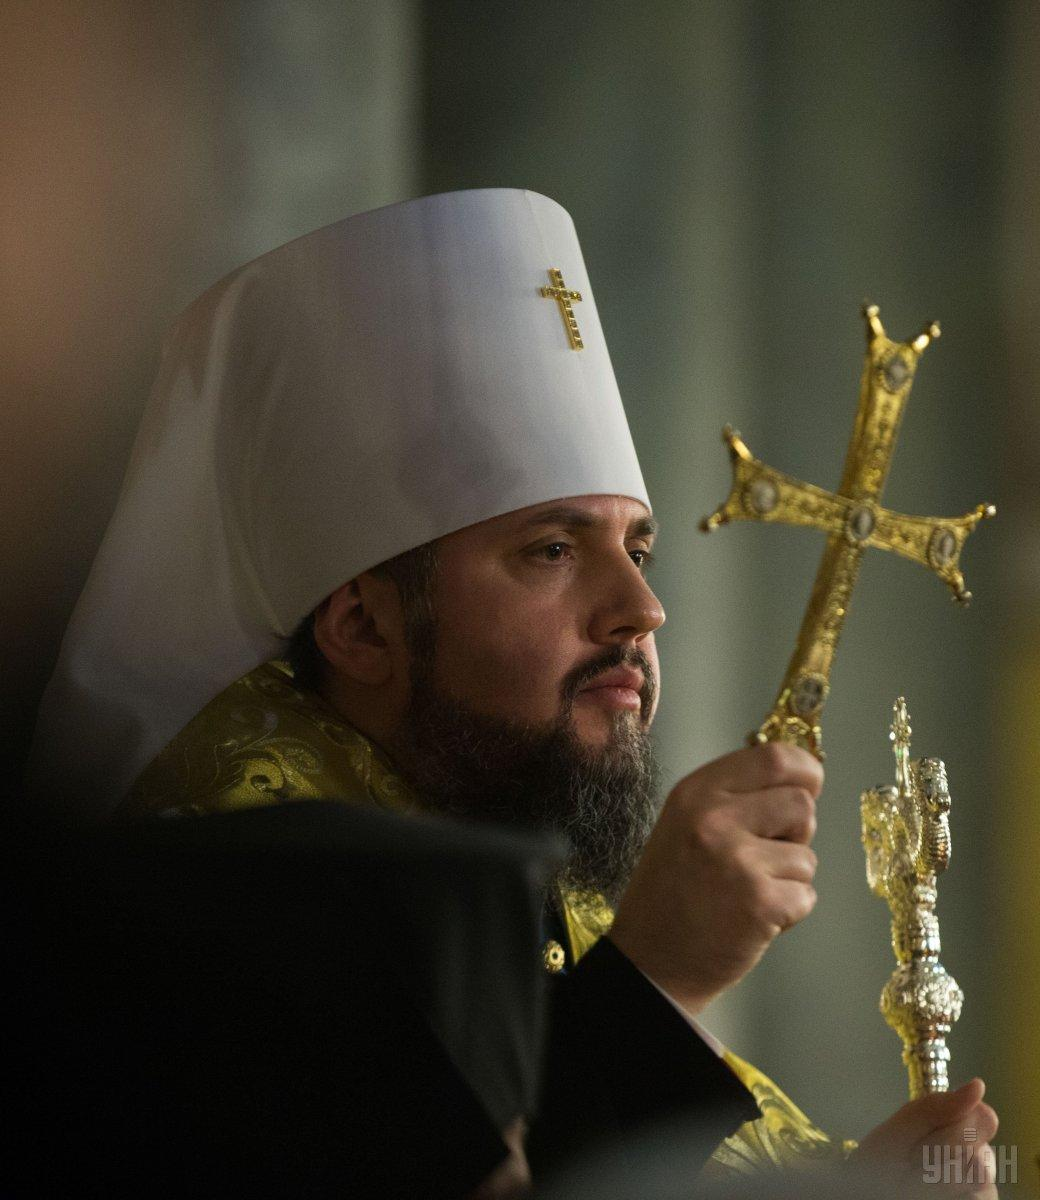 Leader of the Orthodox Church of Ukraine, Metropolitan of Kyiv and All Ukraine Epifaniy / Photo from UNIAN